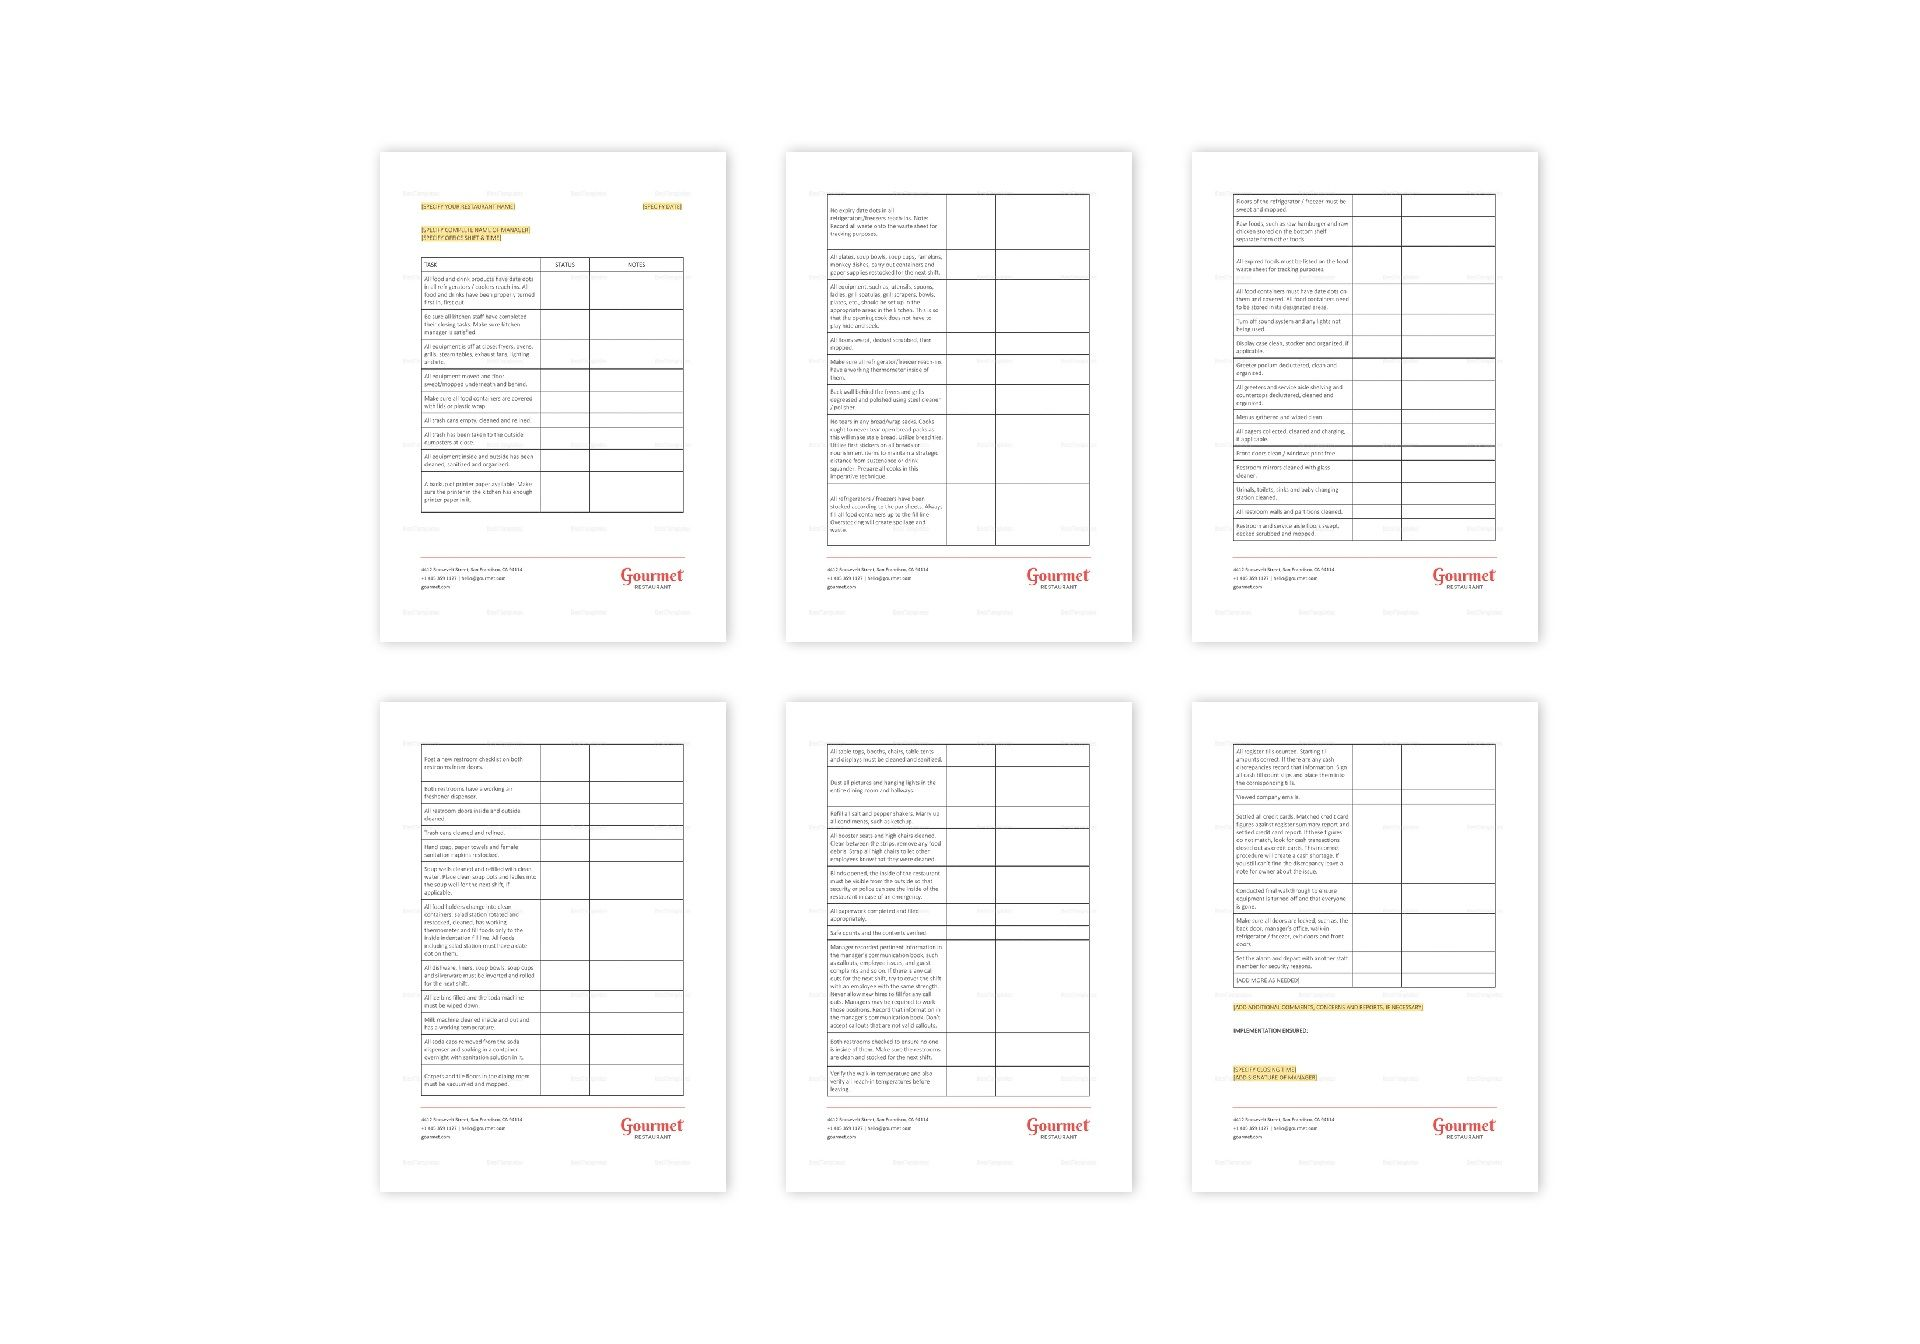 Restaurant Manager's Closing Checklist Template in MS Word